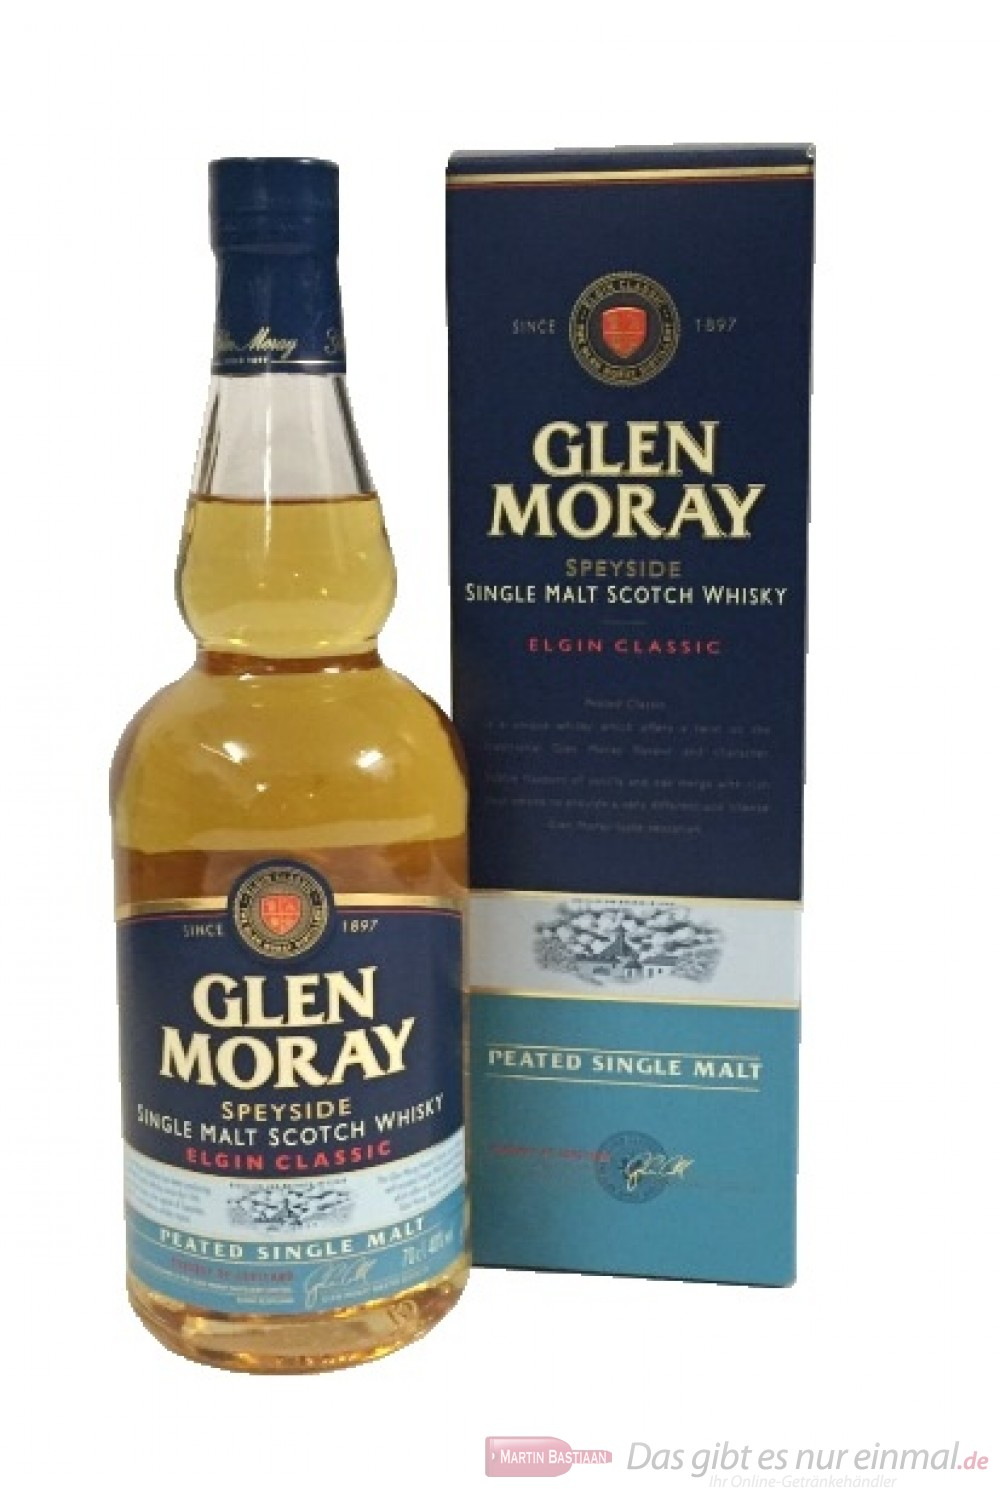 Glen Moray Elgin Classic Peated